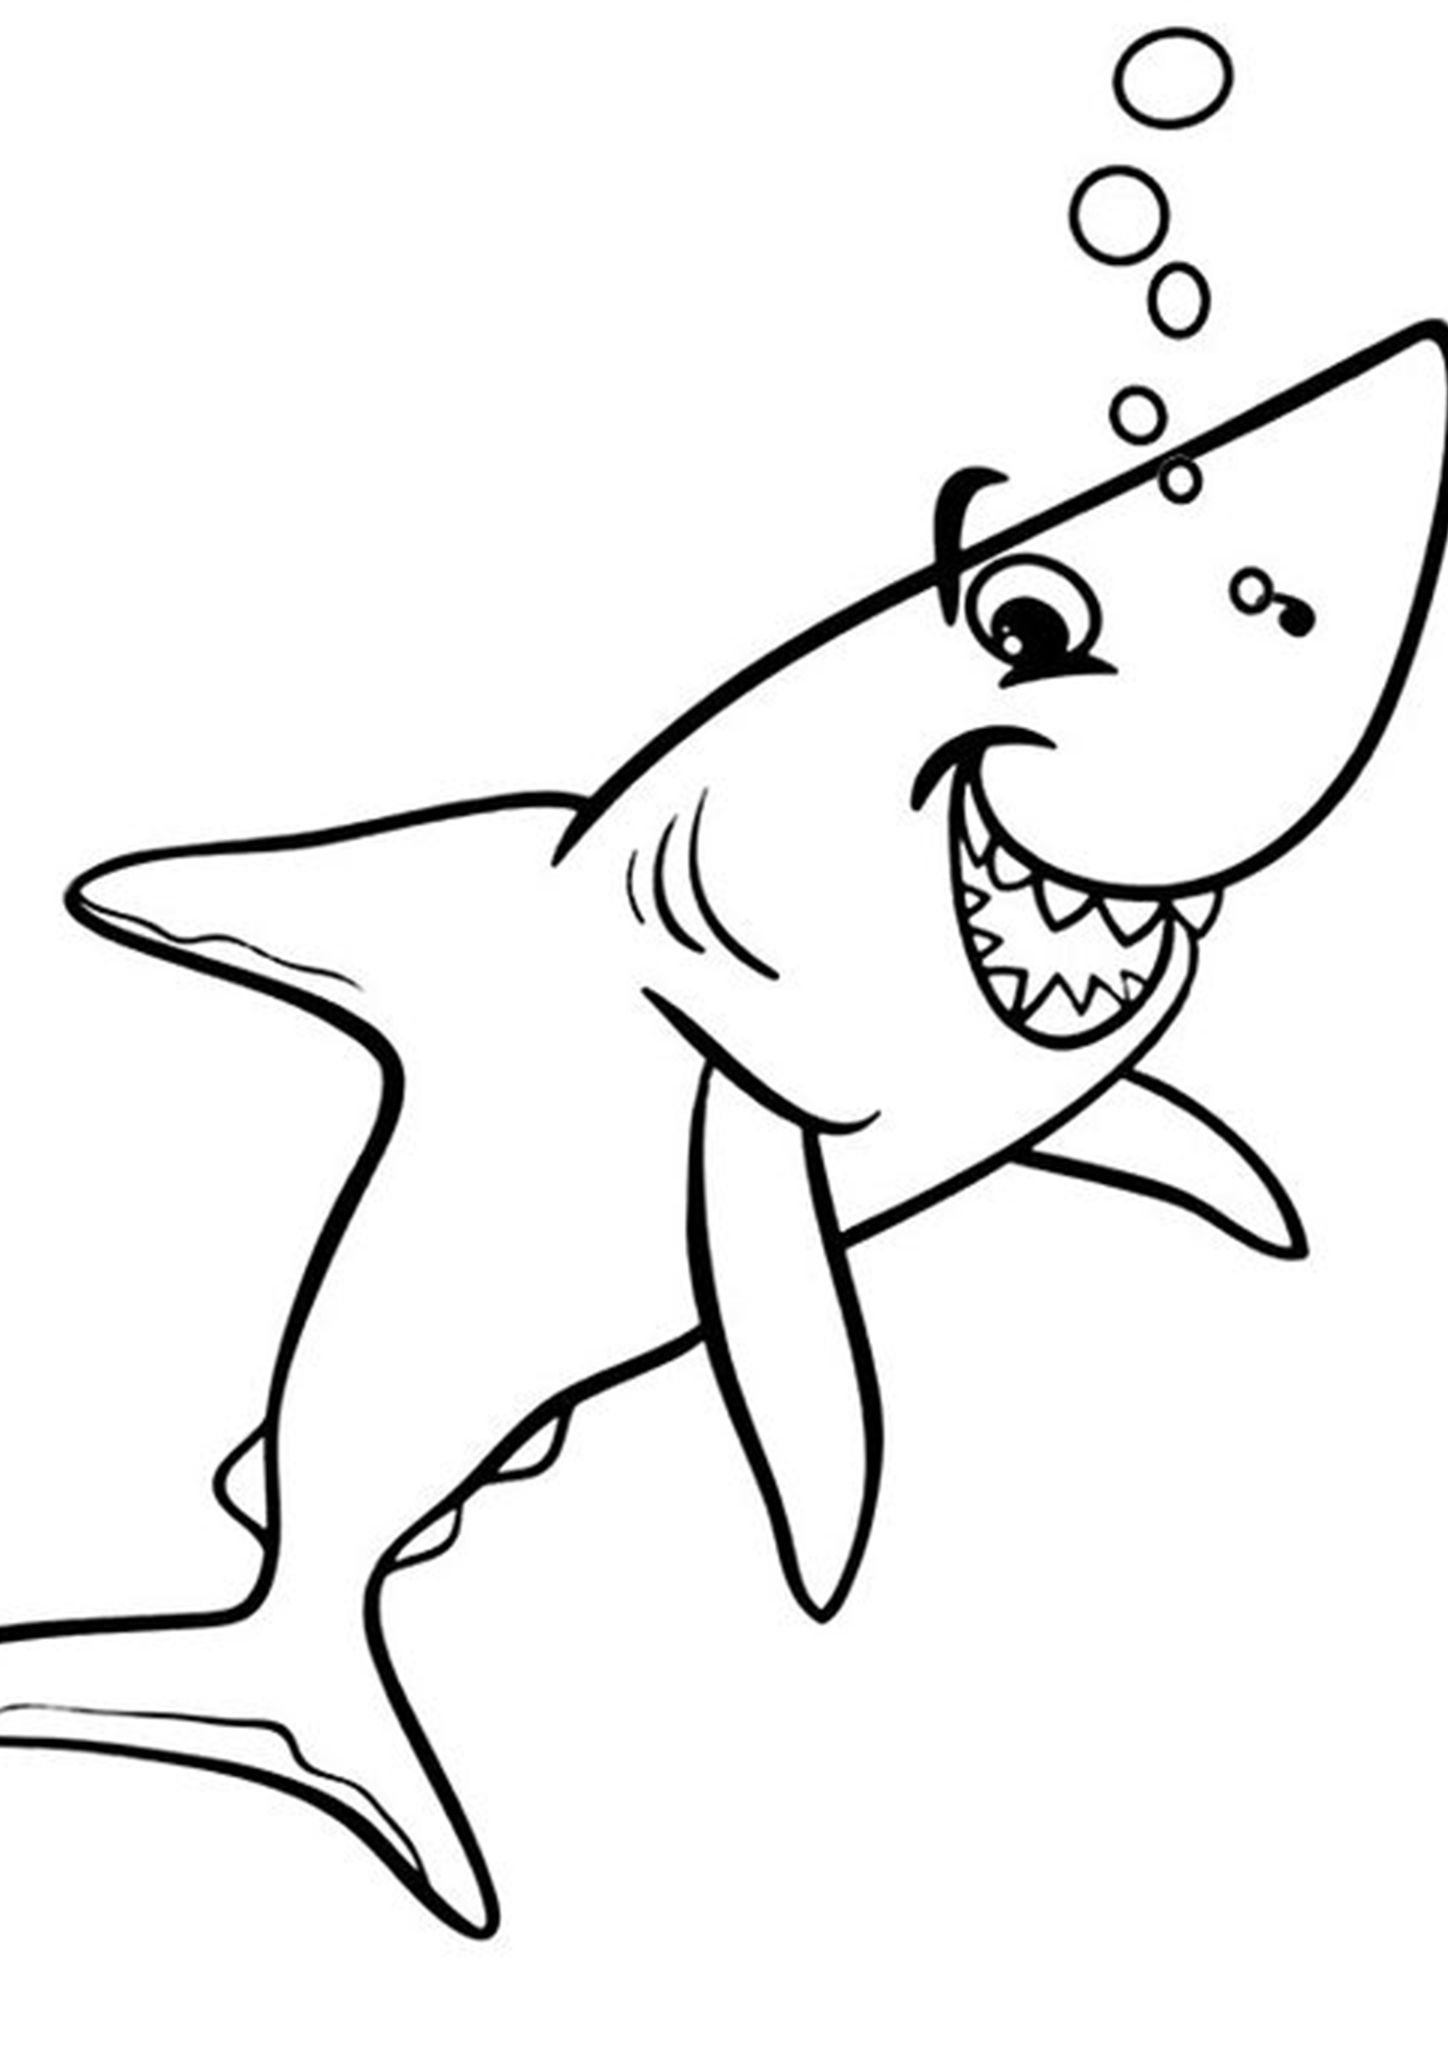 Free Easy To Print Shark Coloring Pages Shark Coloring Pages Coloring Pages Bird Coloring Pages